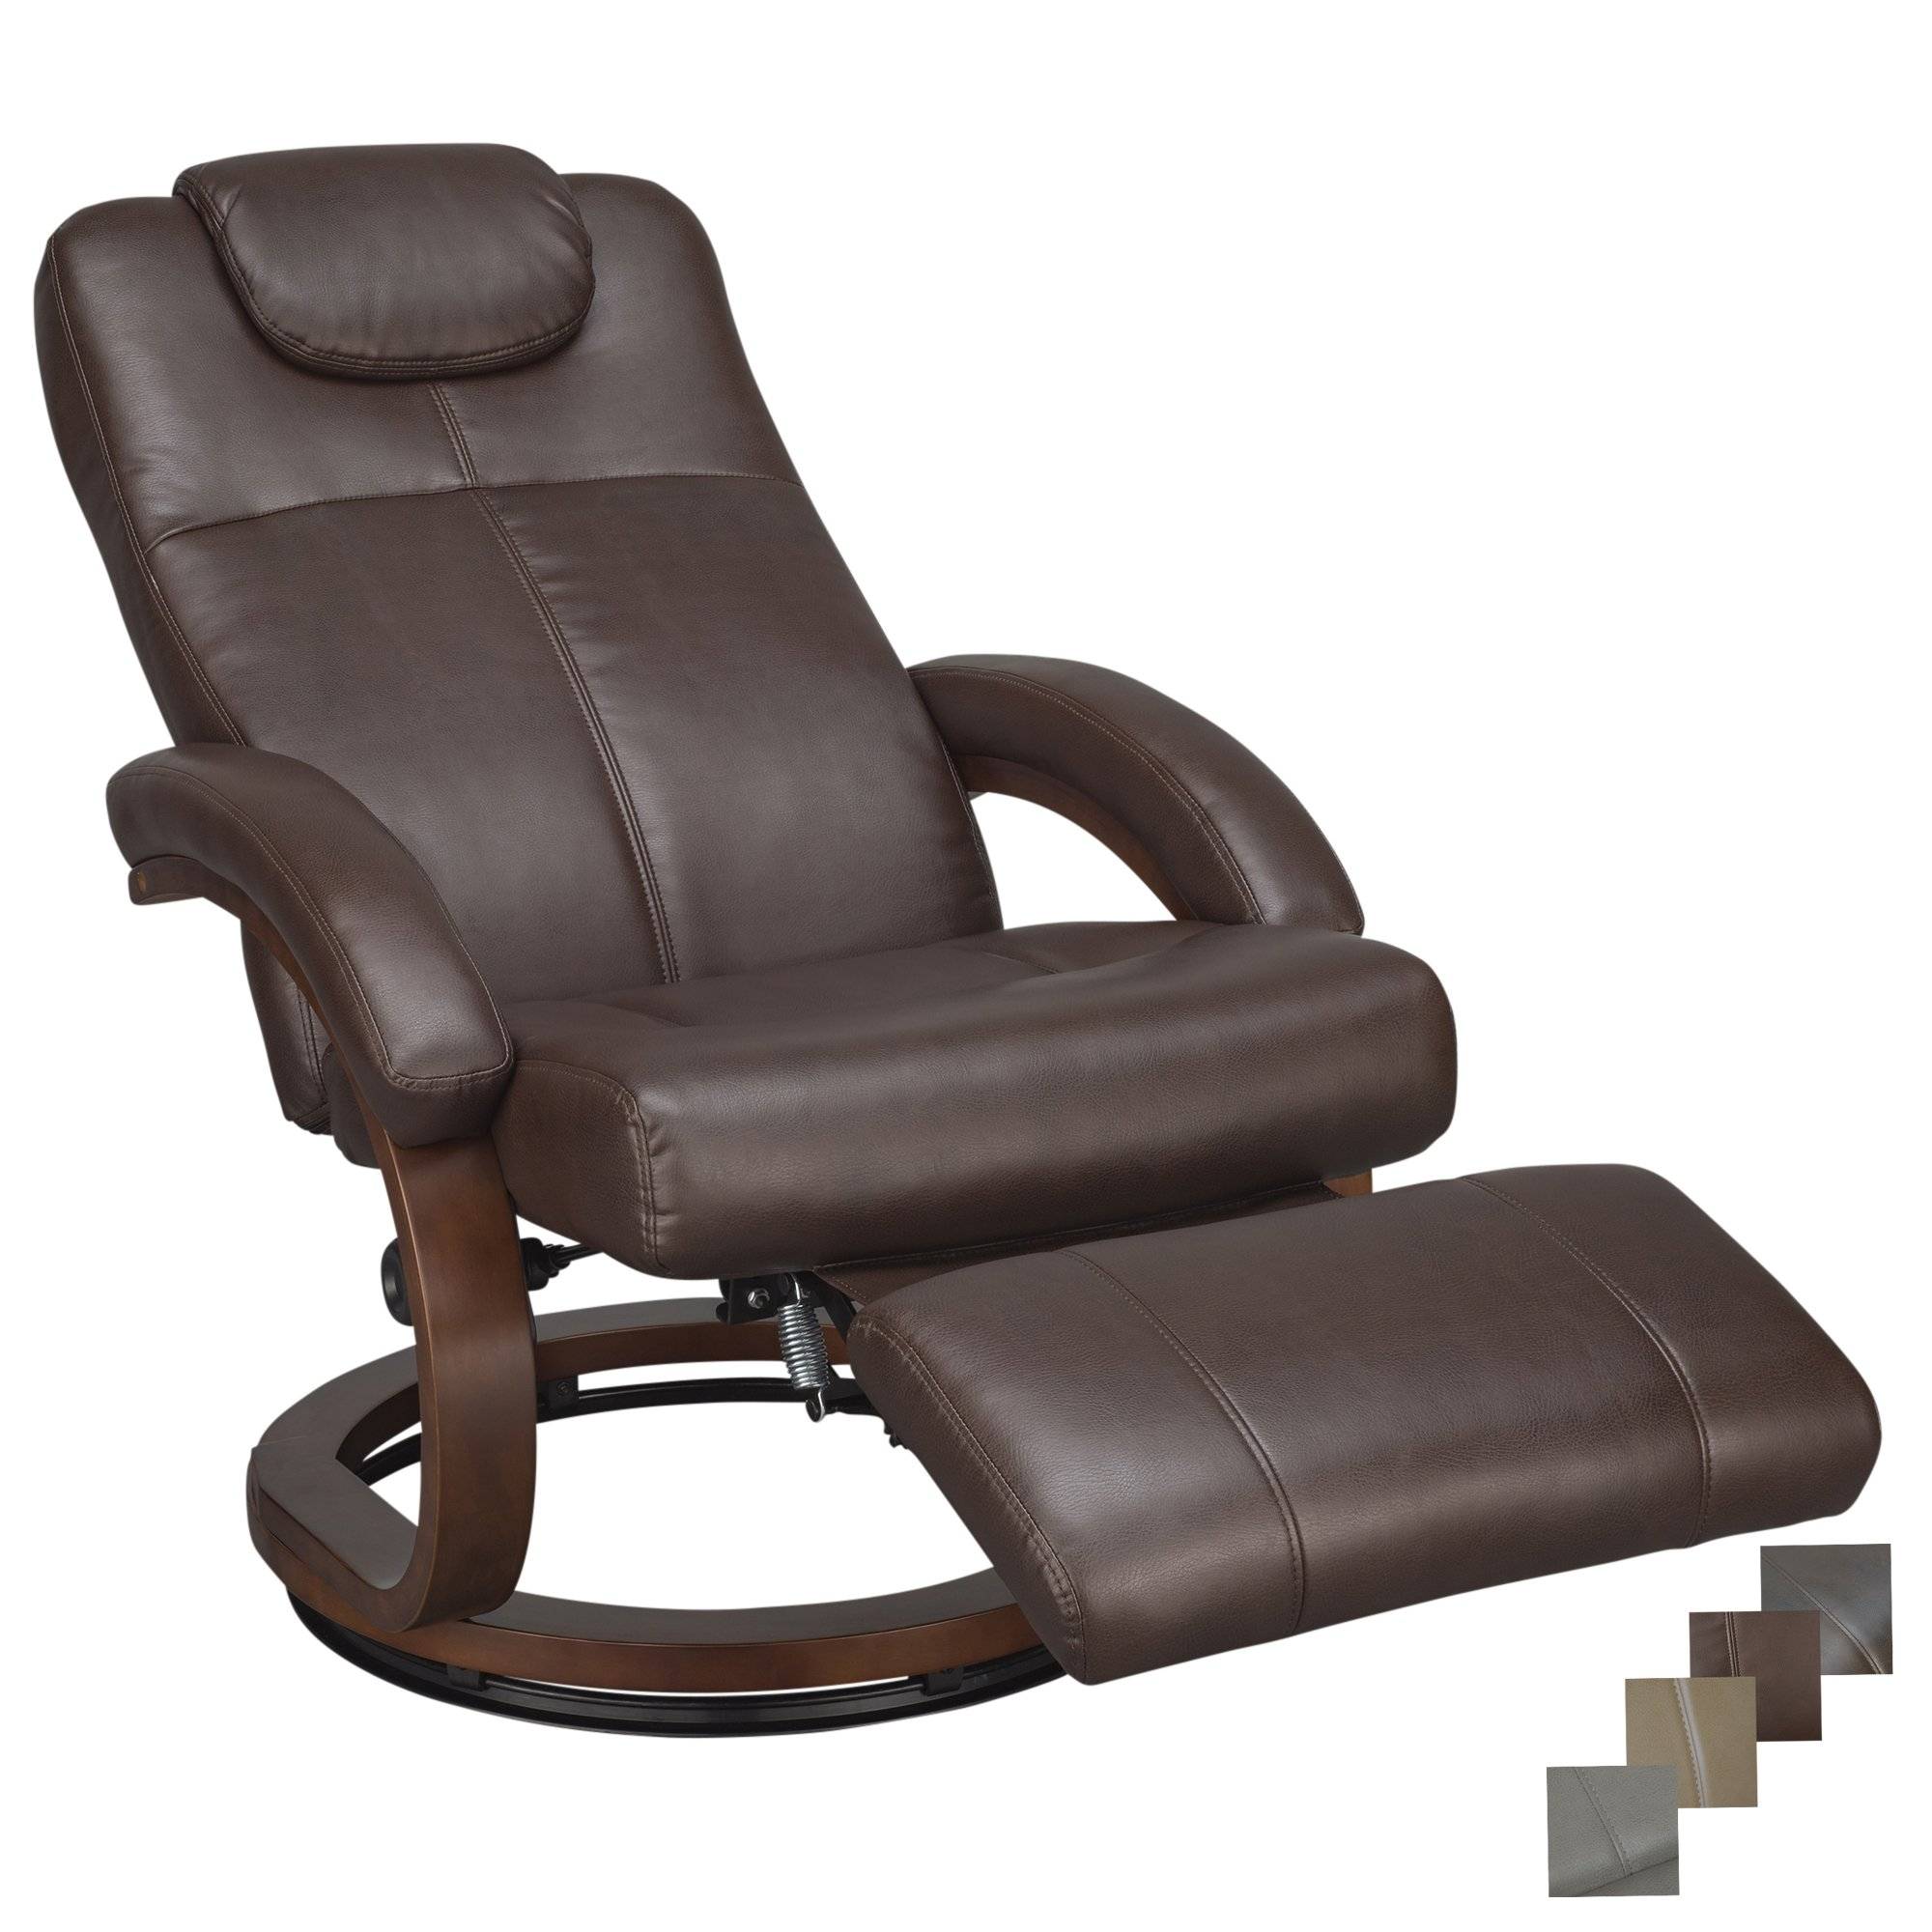 RecPro Charles 28'' RV Euro Chair Recliner Modern Design RV Furniture (1, Mahogany) by RecPro